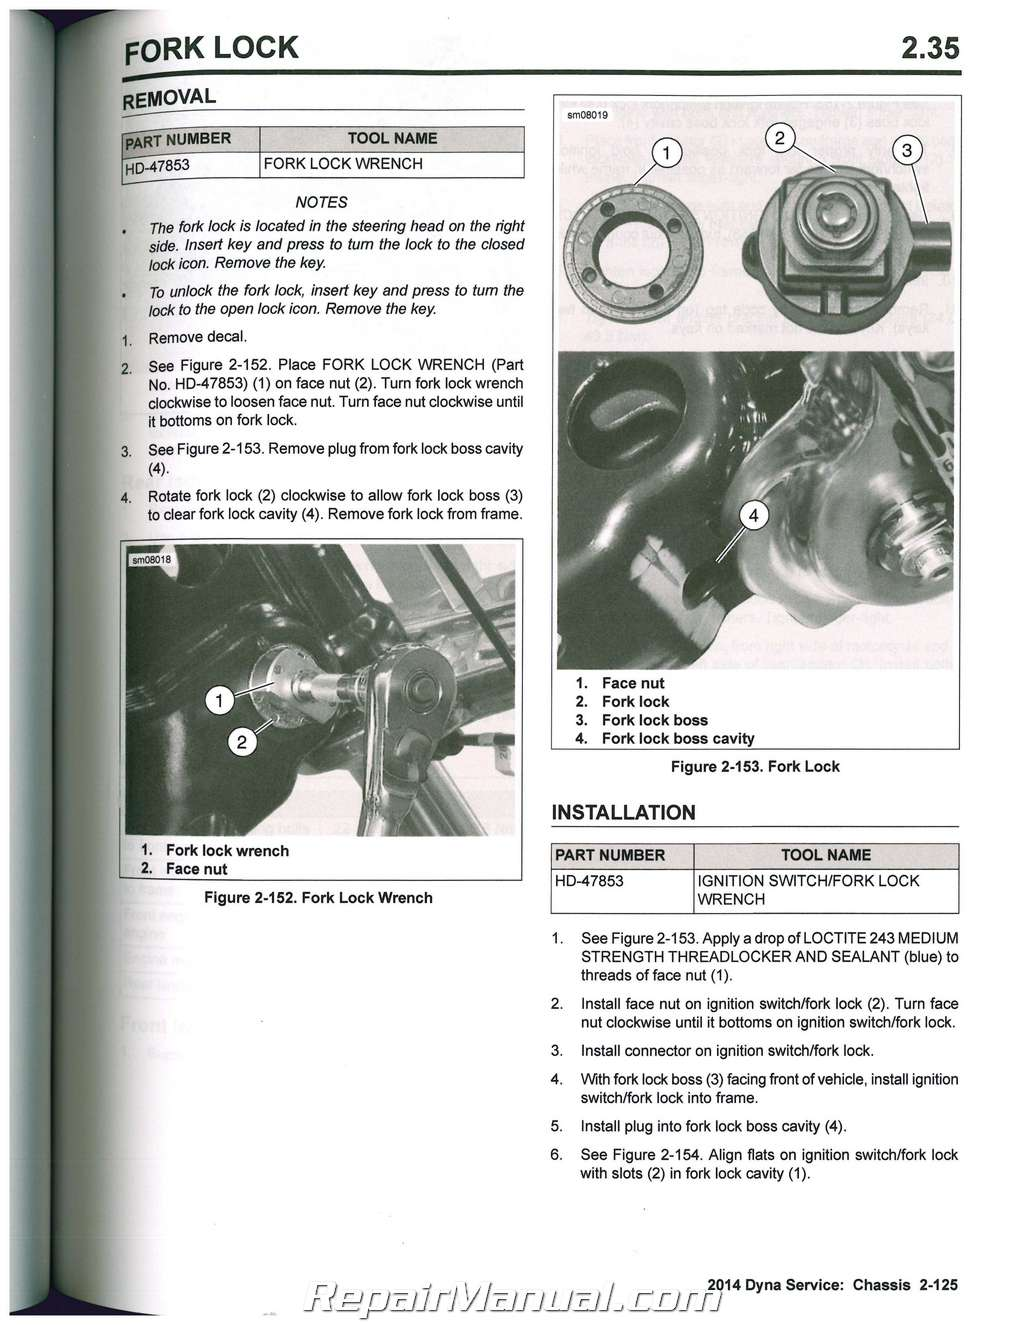 2014 Harley Davidson Dyna Motorcycle Service Manual Fxdl Wiring Diagram Fuel